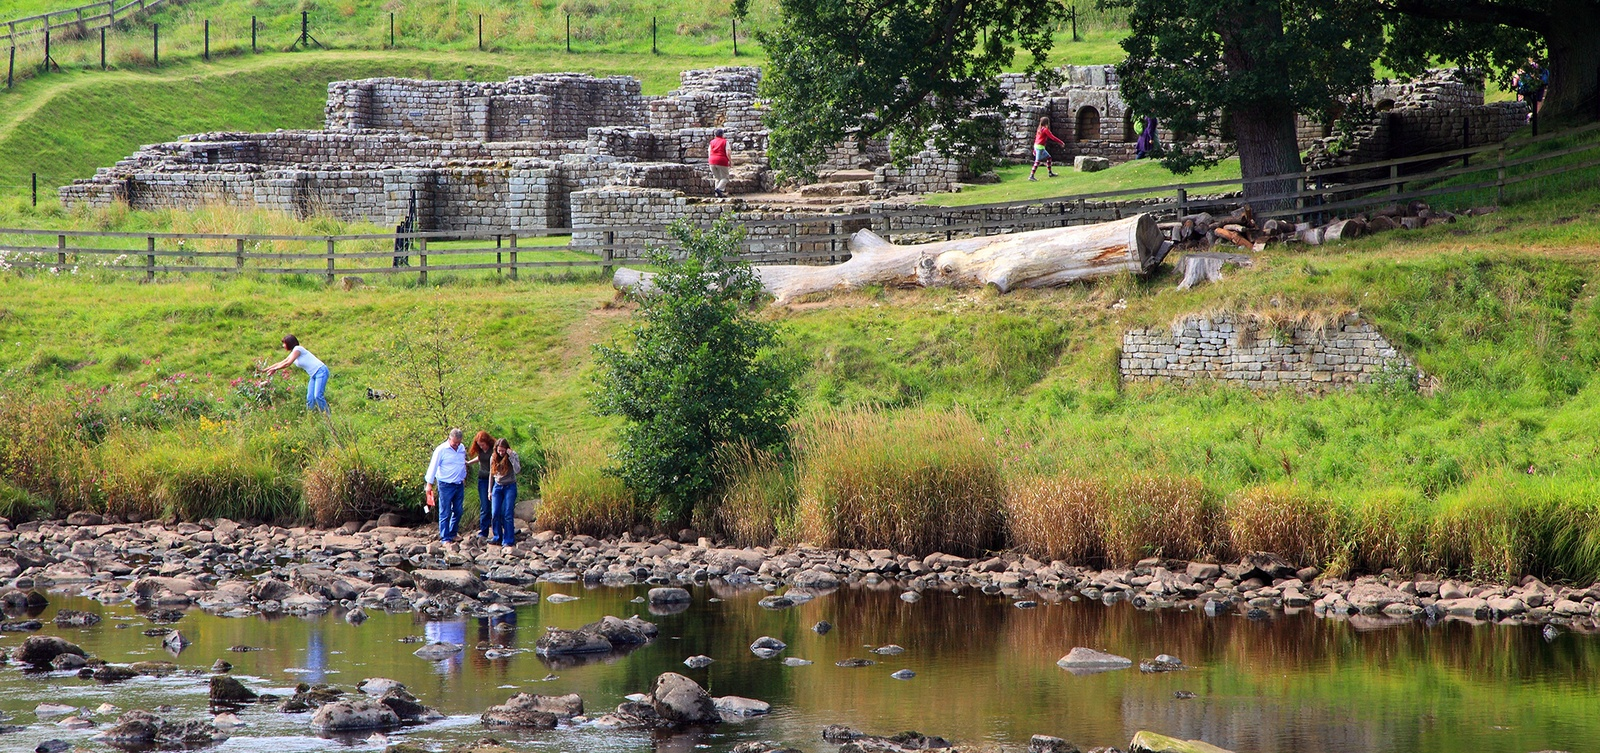 The river at Chesters Roman Fort